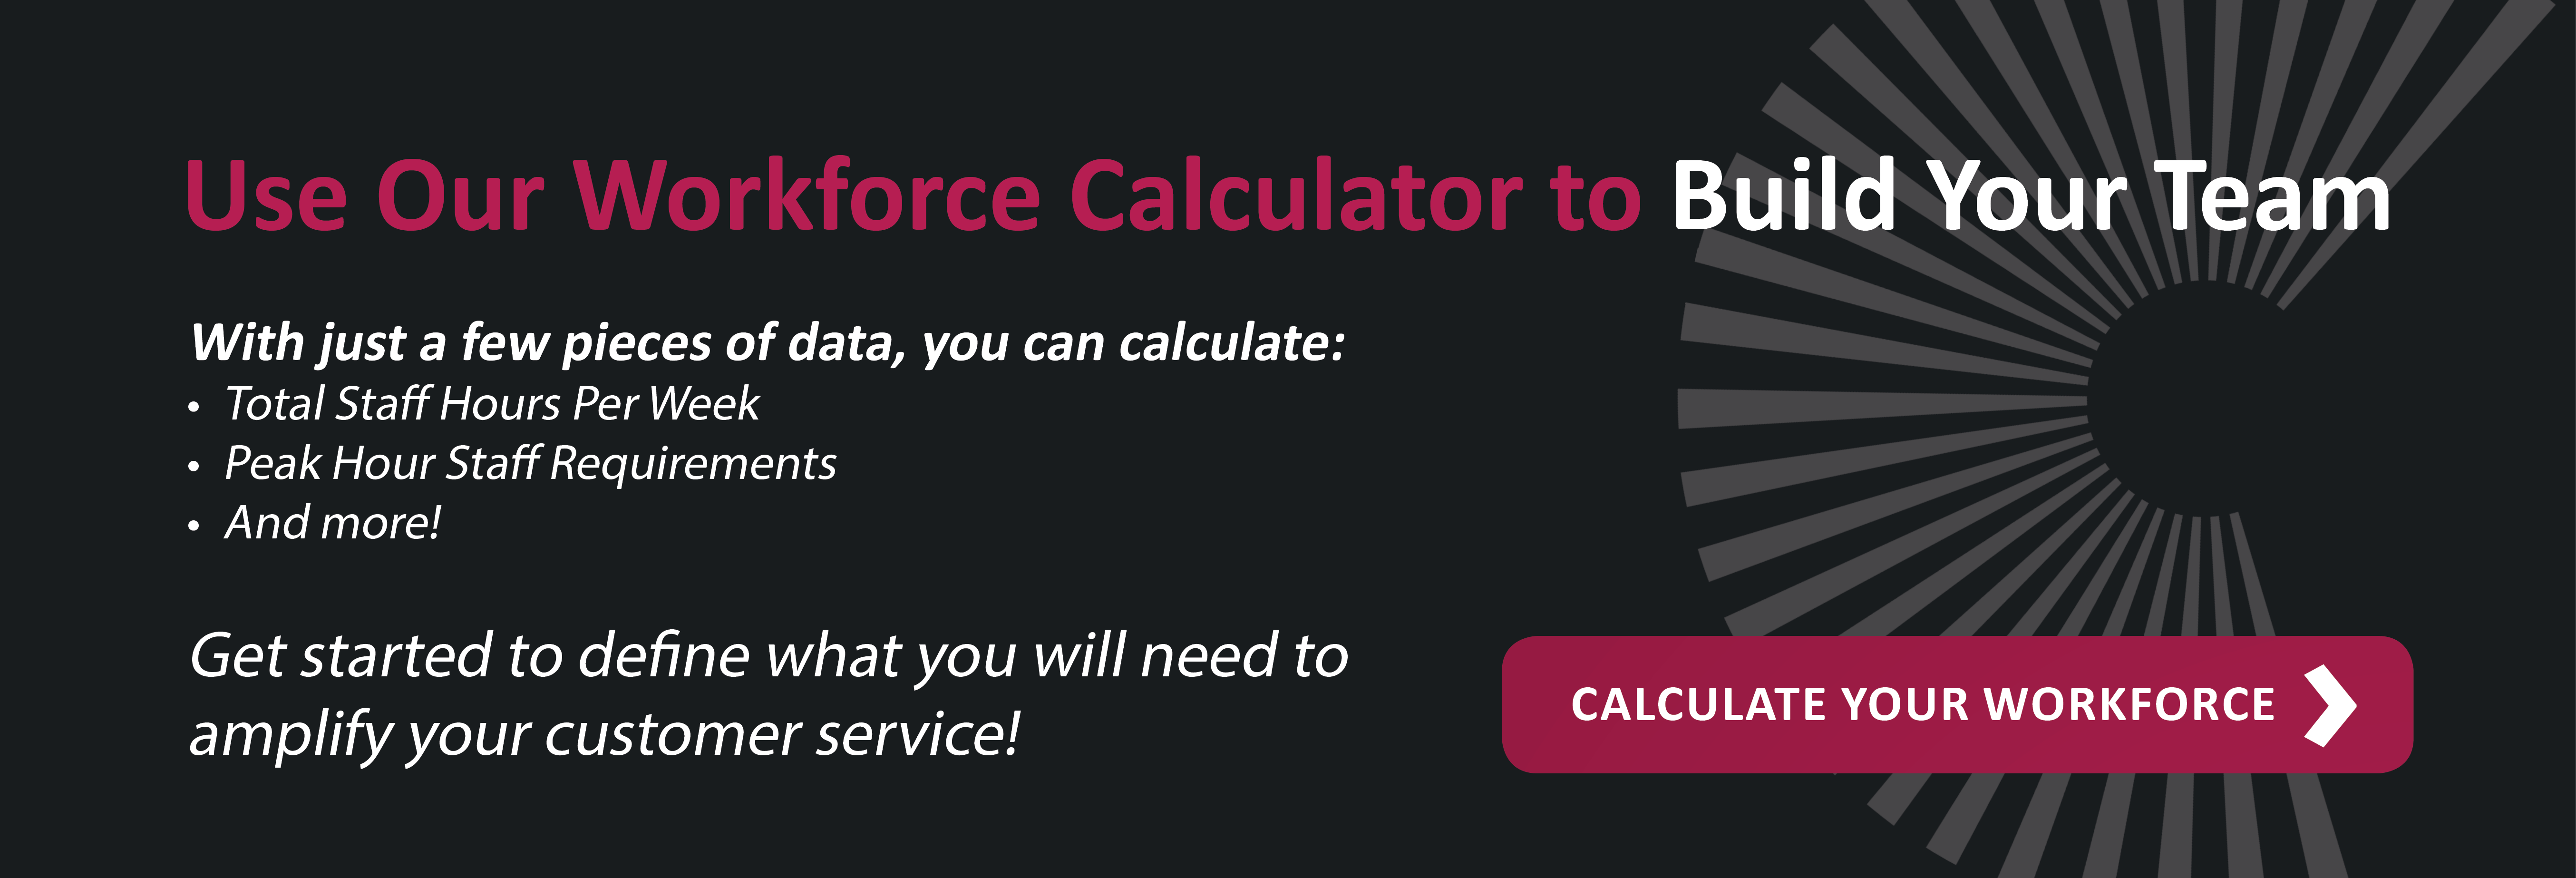 Workforce Calculator